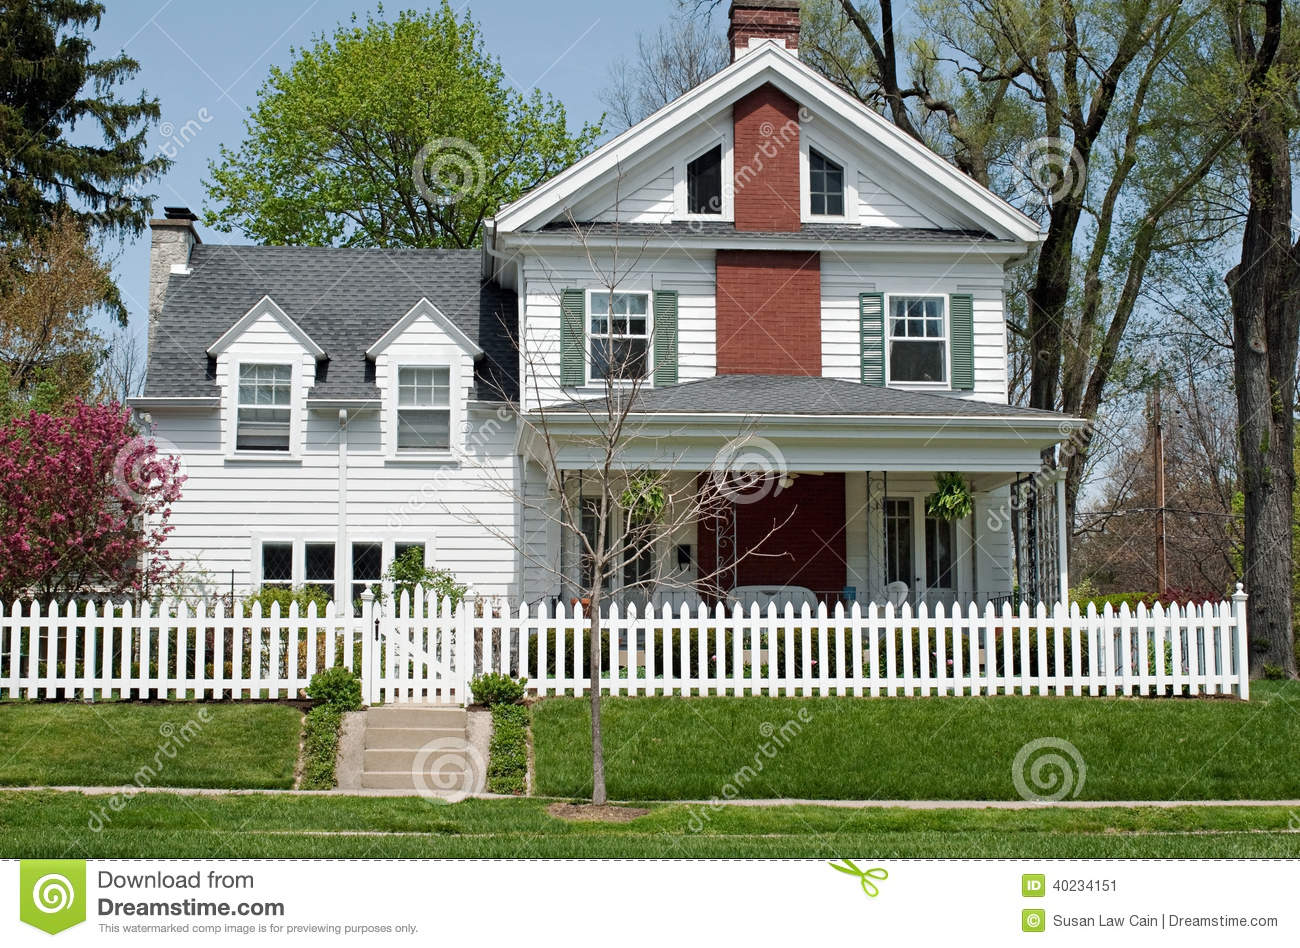 house with white picket fence stock photo image 40234151. Black Bedroom Furniture Sets. Home Design Ideas